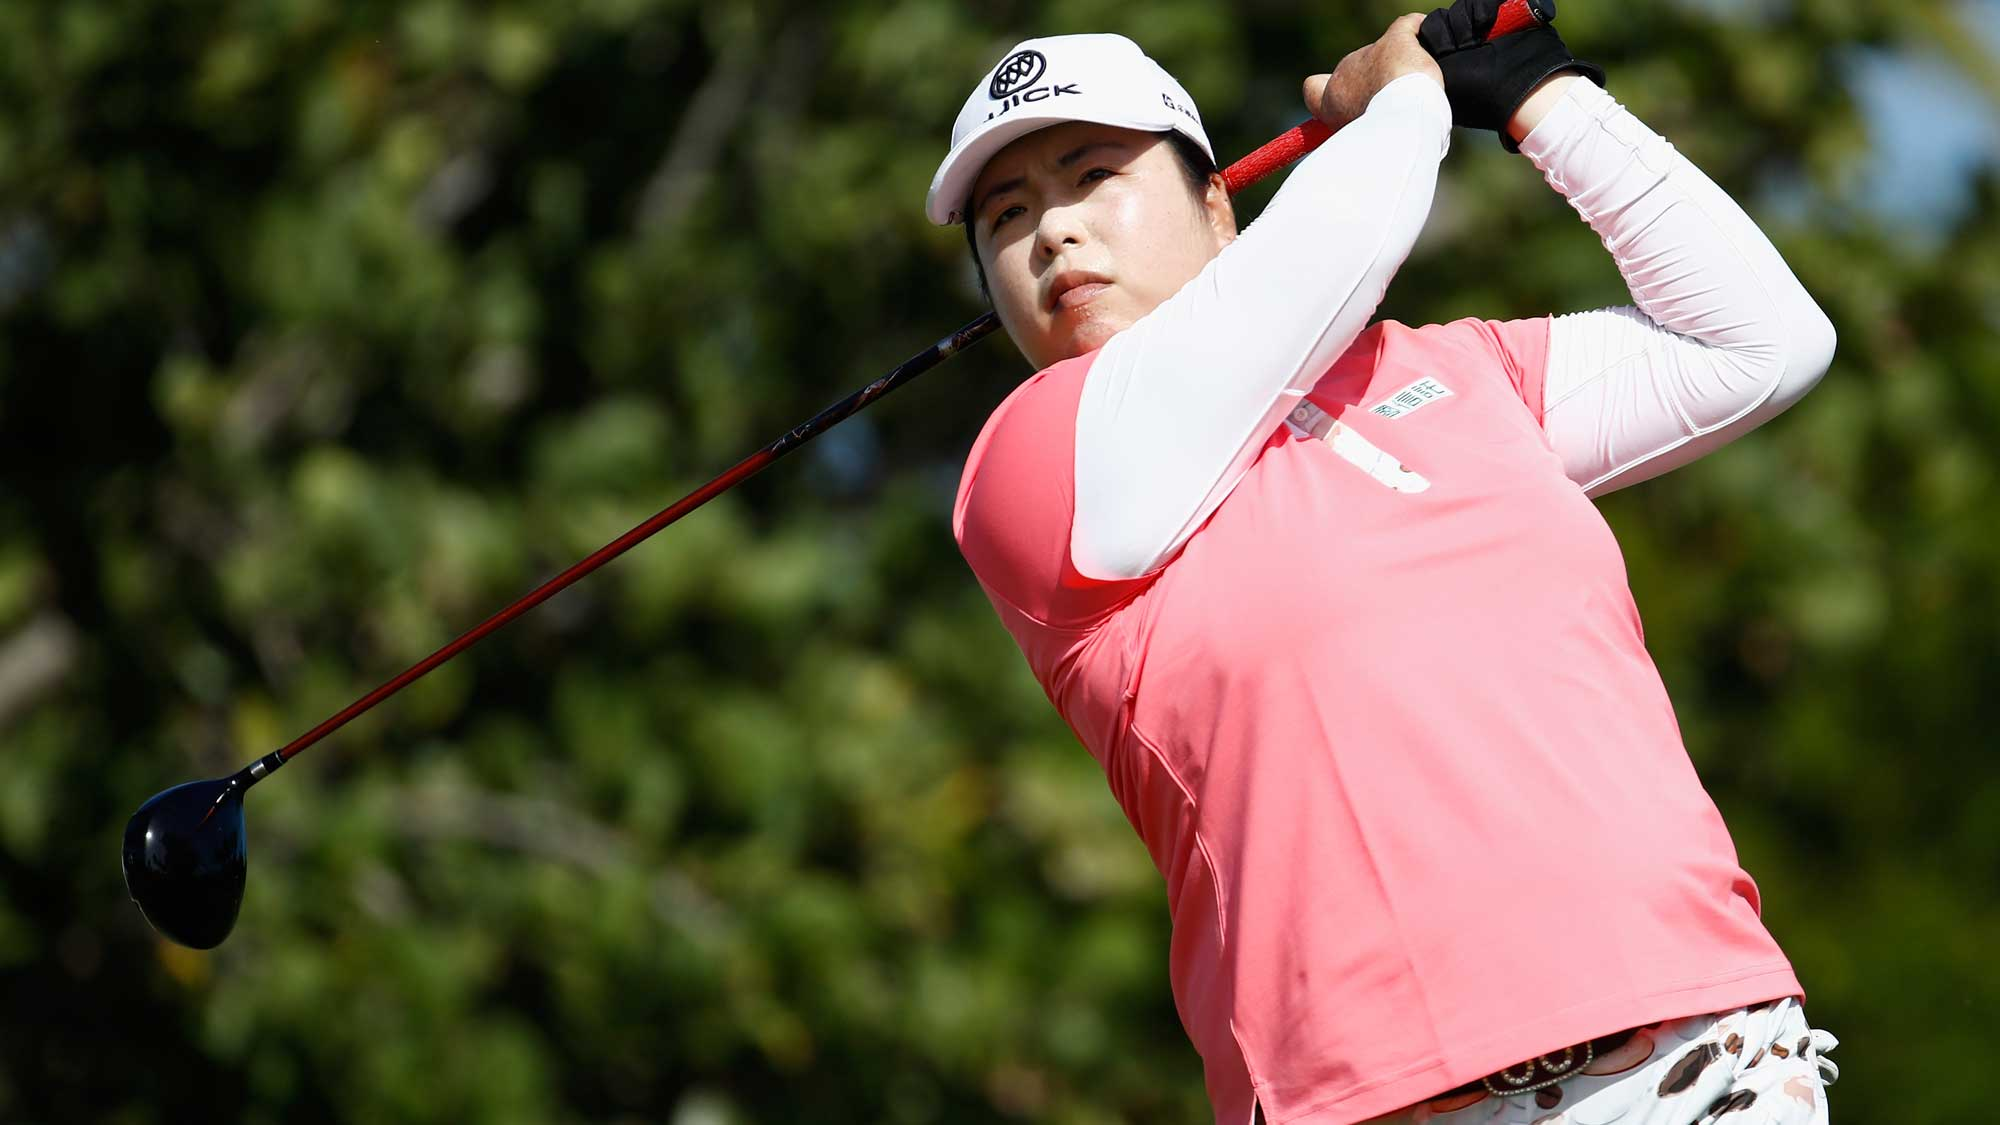 Shanshan Feng of China hits her tee shot on the 4th hole during the final round of the Pure Silk Bahamas LPGA Classic